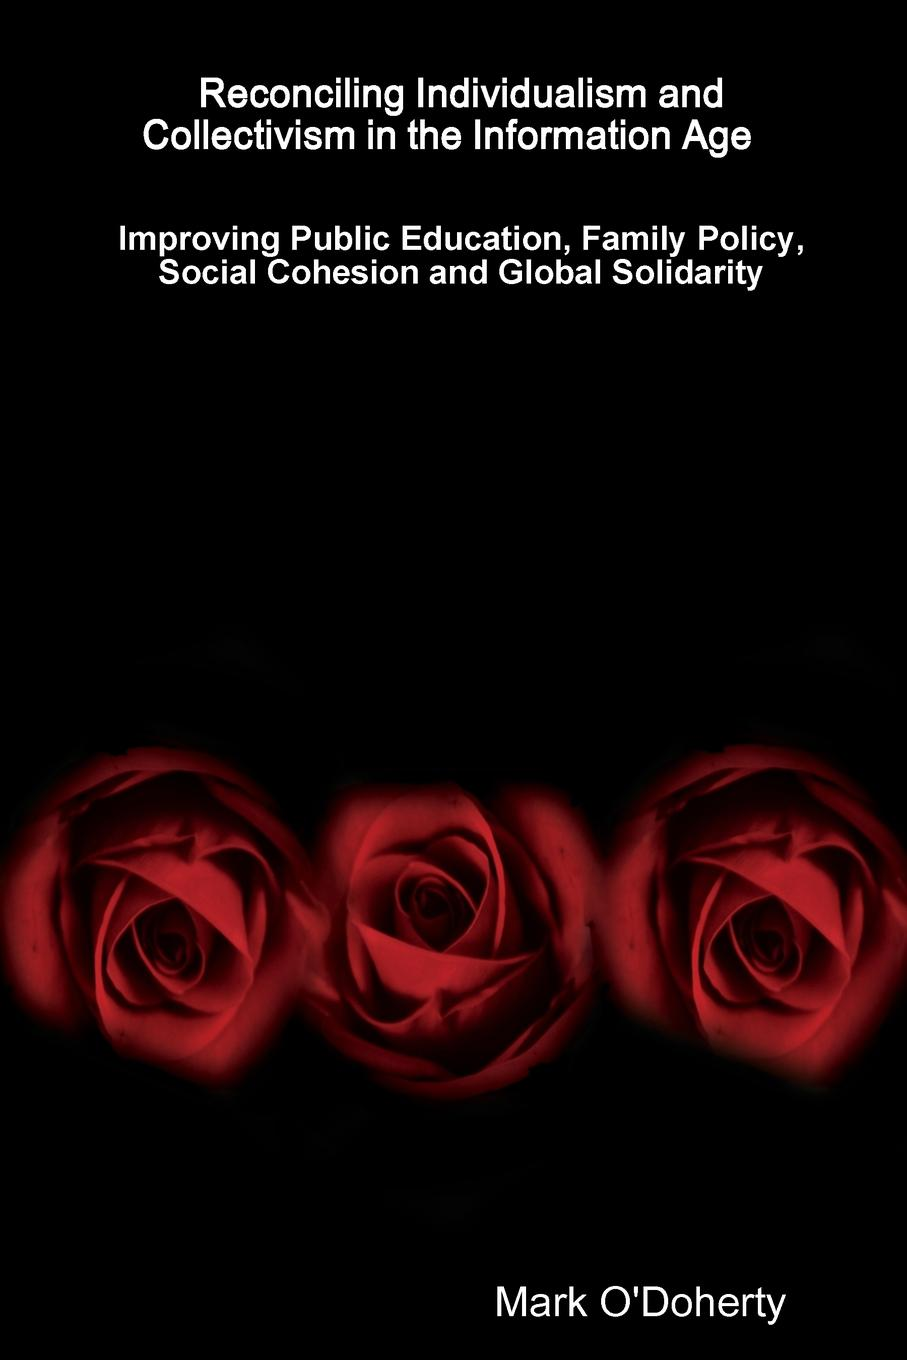 Mark O'Doherty Reconciling Individualism and Collectivism in the Information Age - Improving Public Education, Family Policy, Social Cohesion and Global Solidarity myths of modern individualism